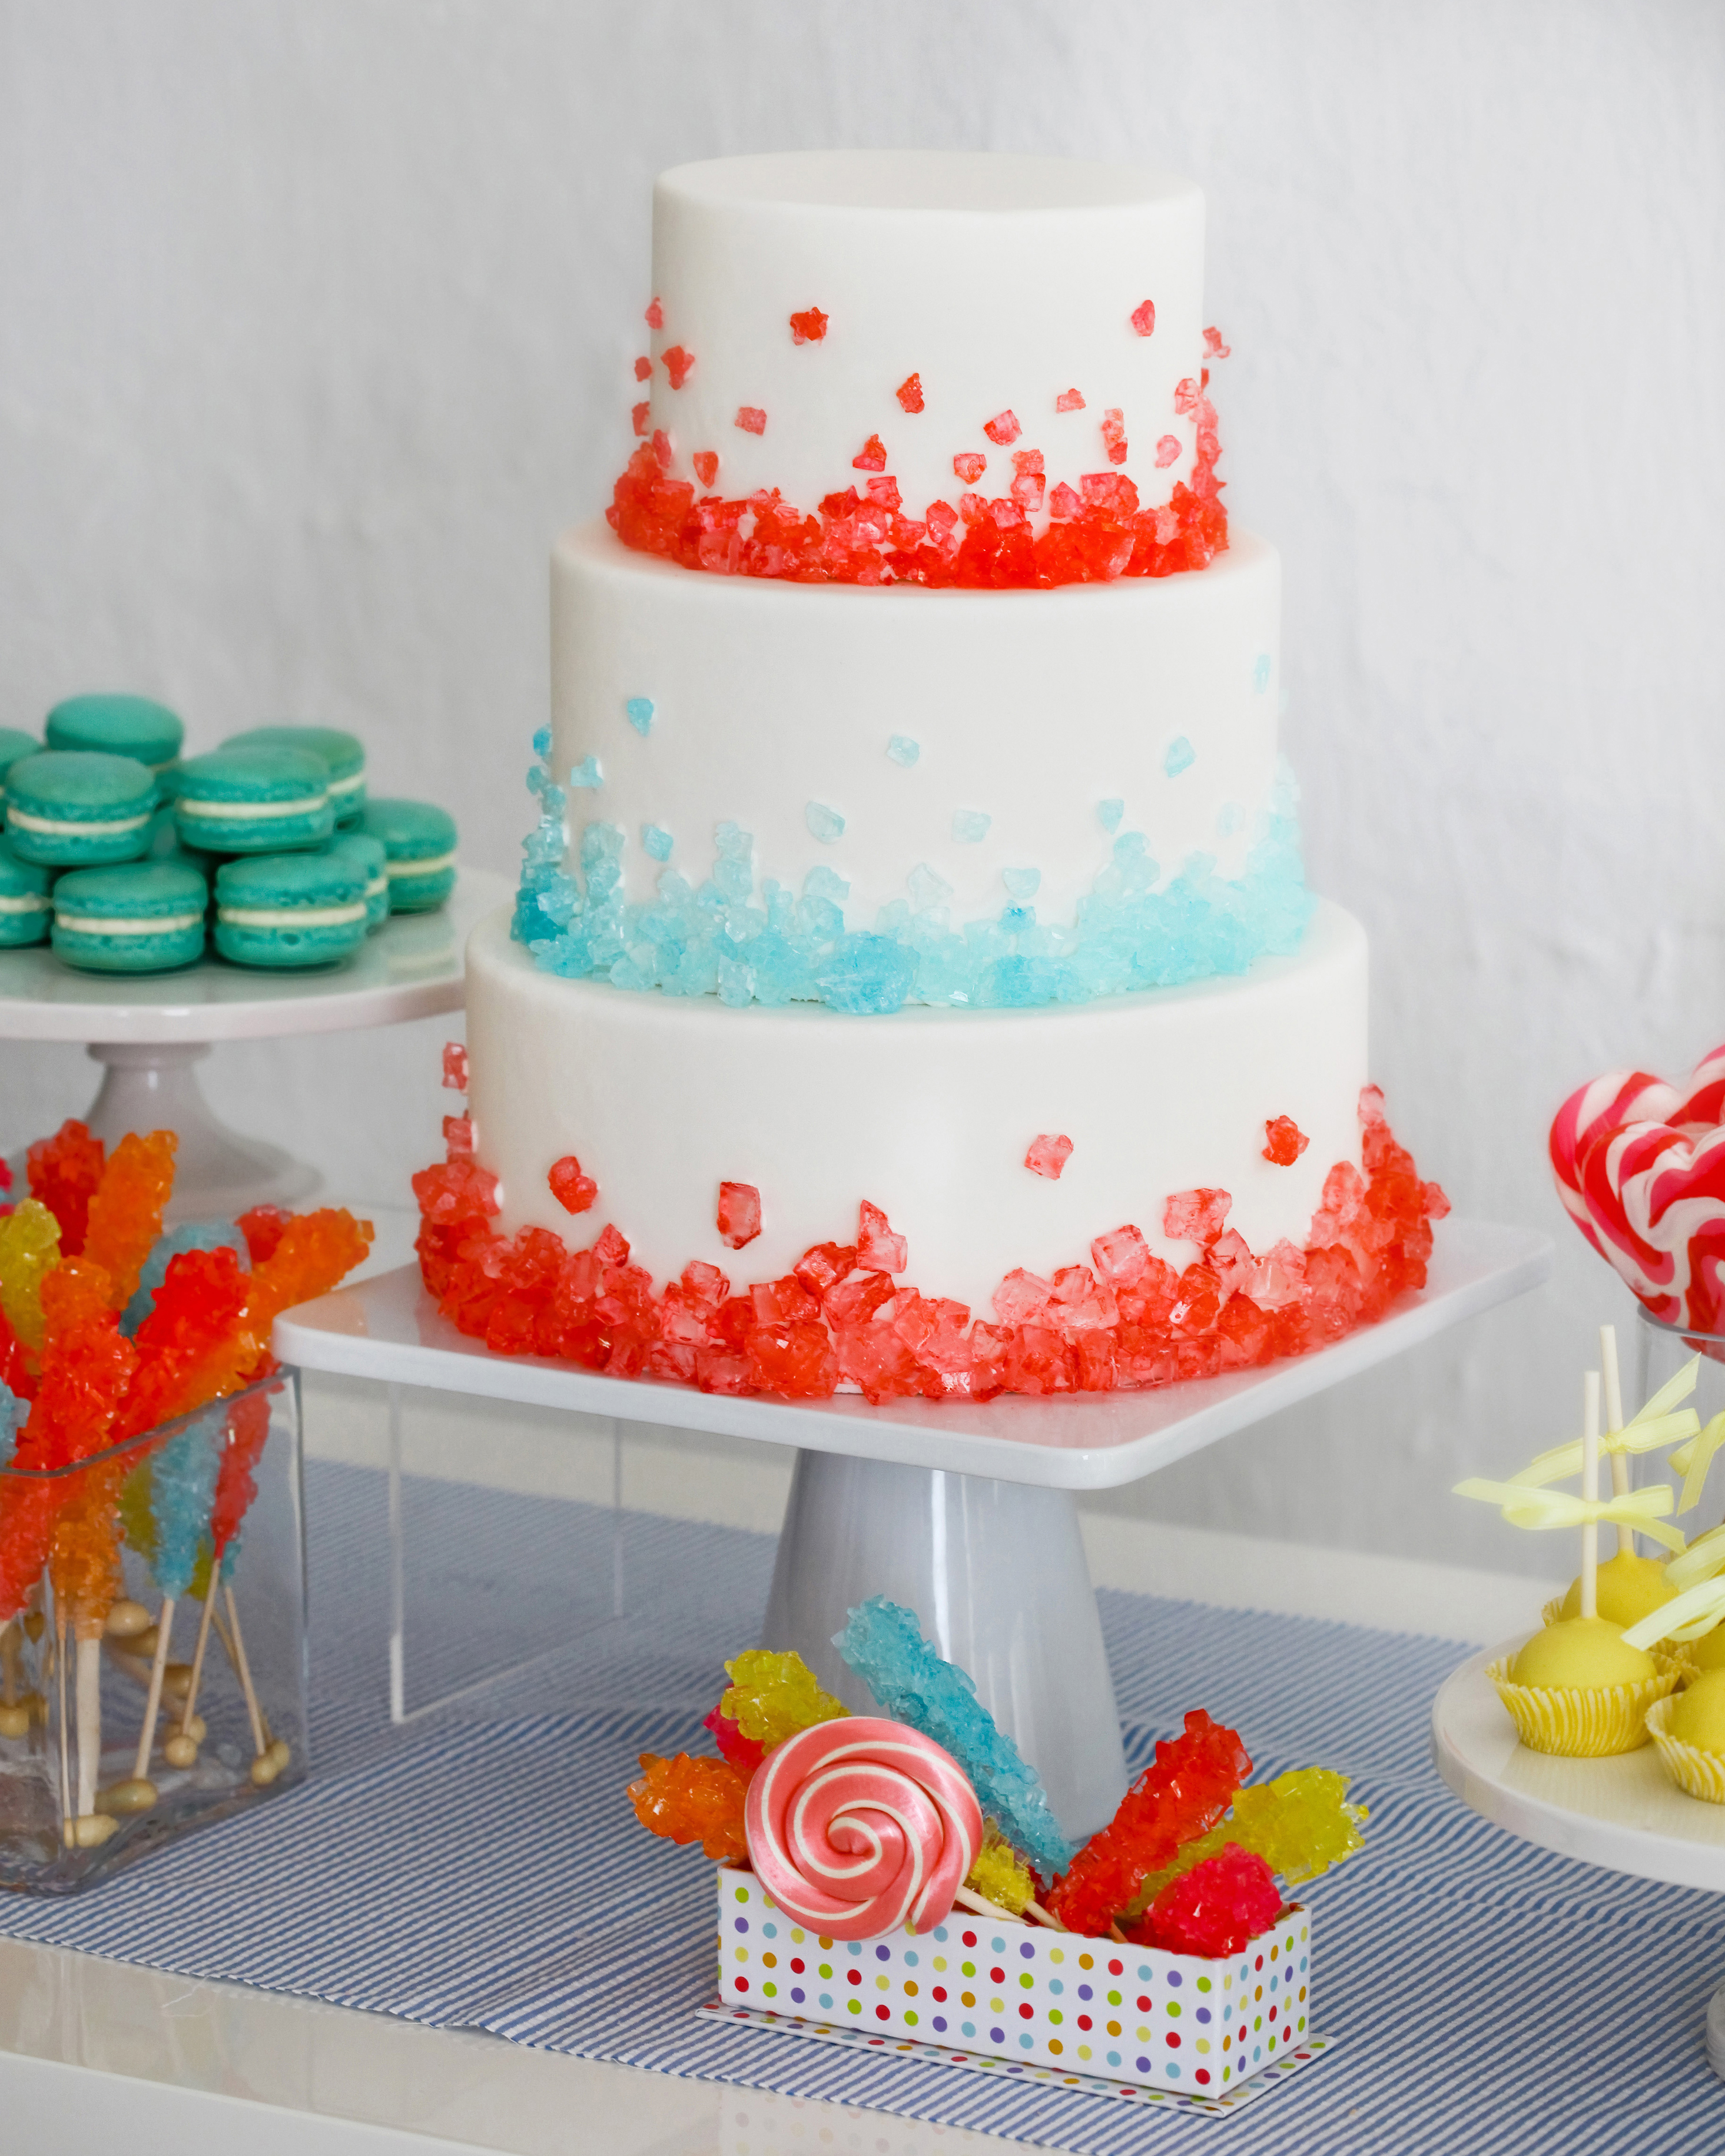 cake-pros-cocoafig-0414.jpg